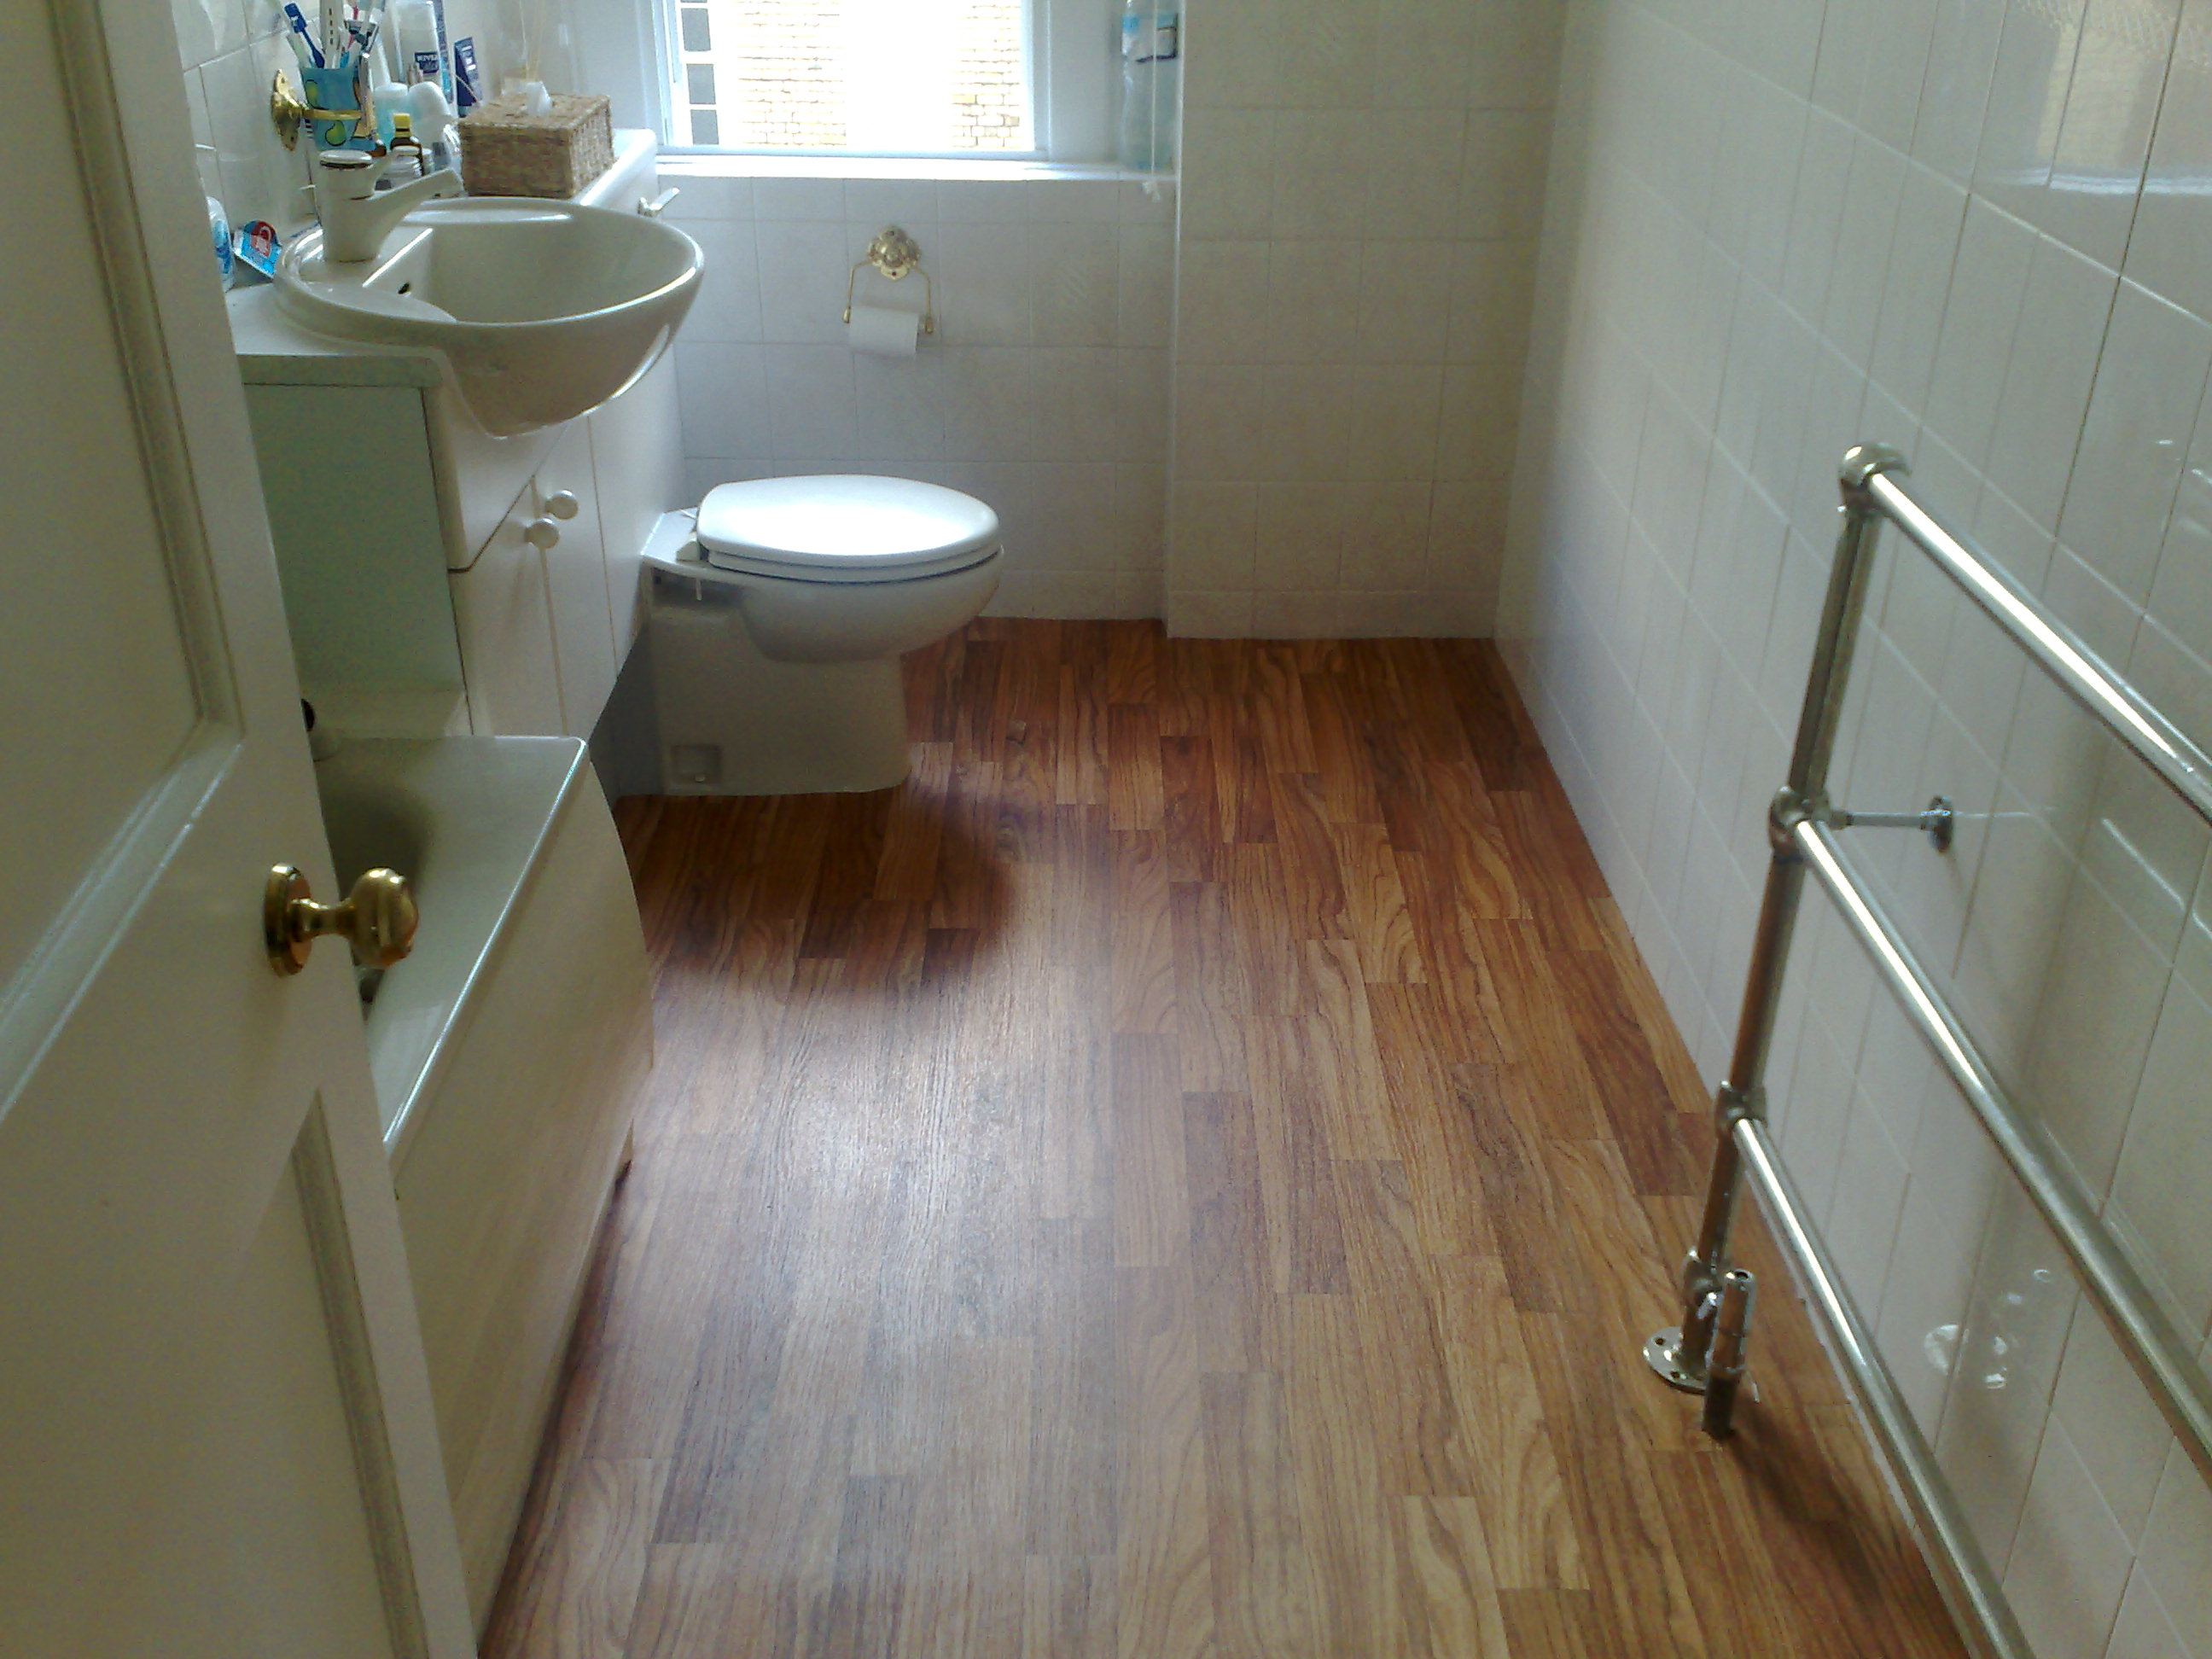 Bathroom flooring. Vinyl flooring in bathroom   large and beautiful photos  Photo to